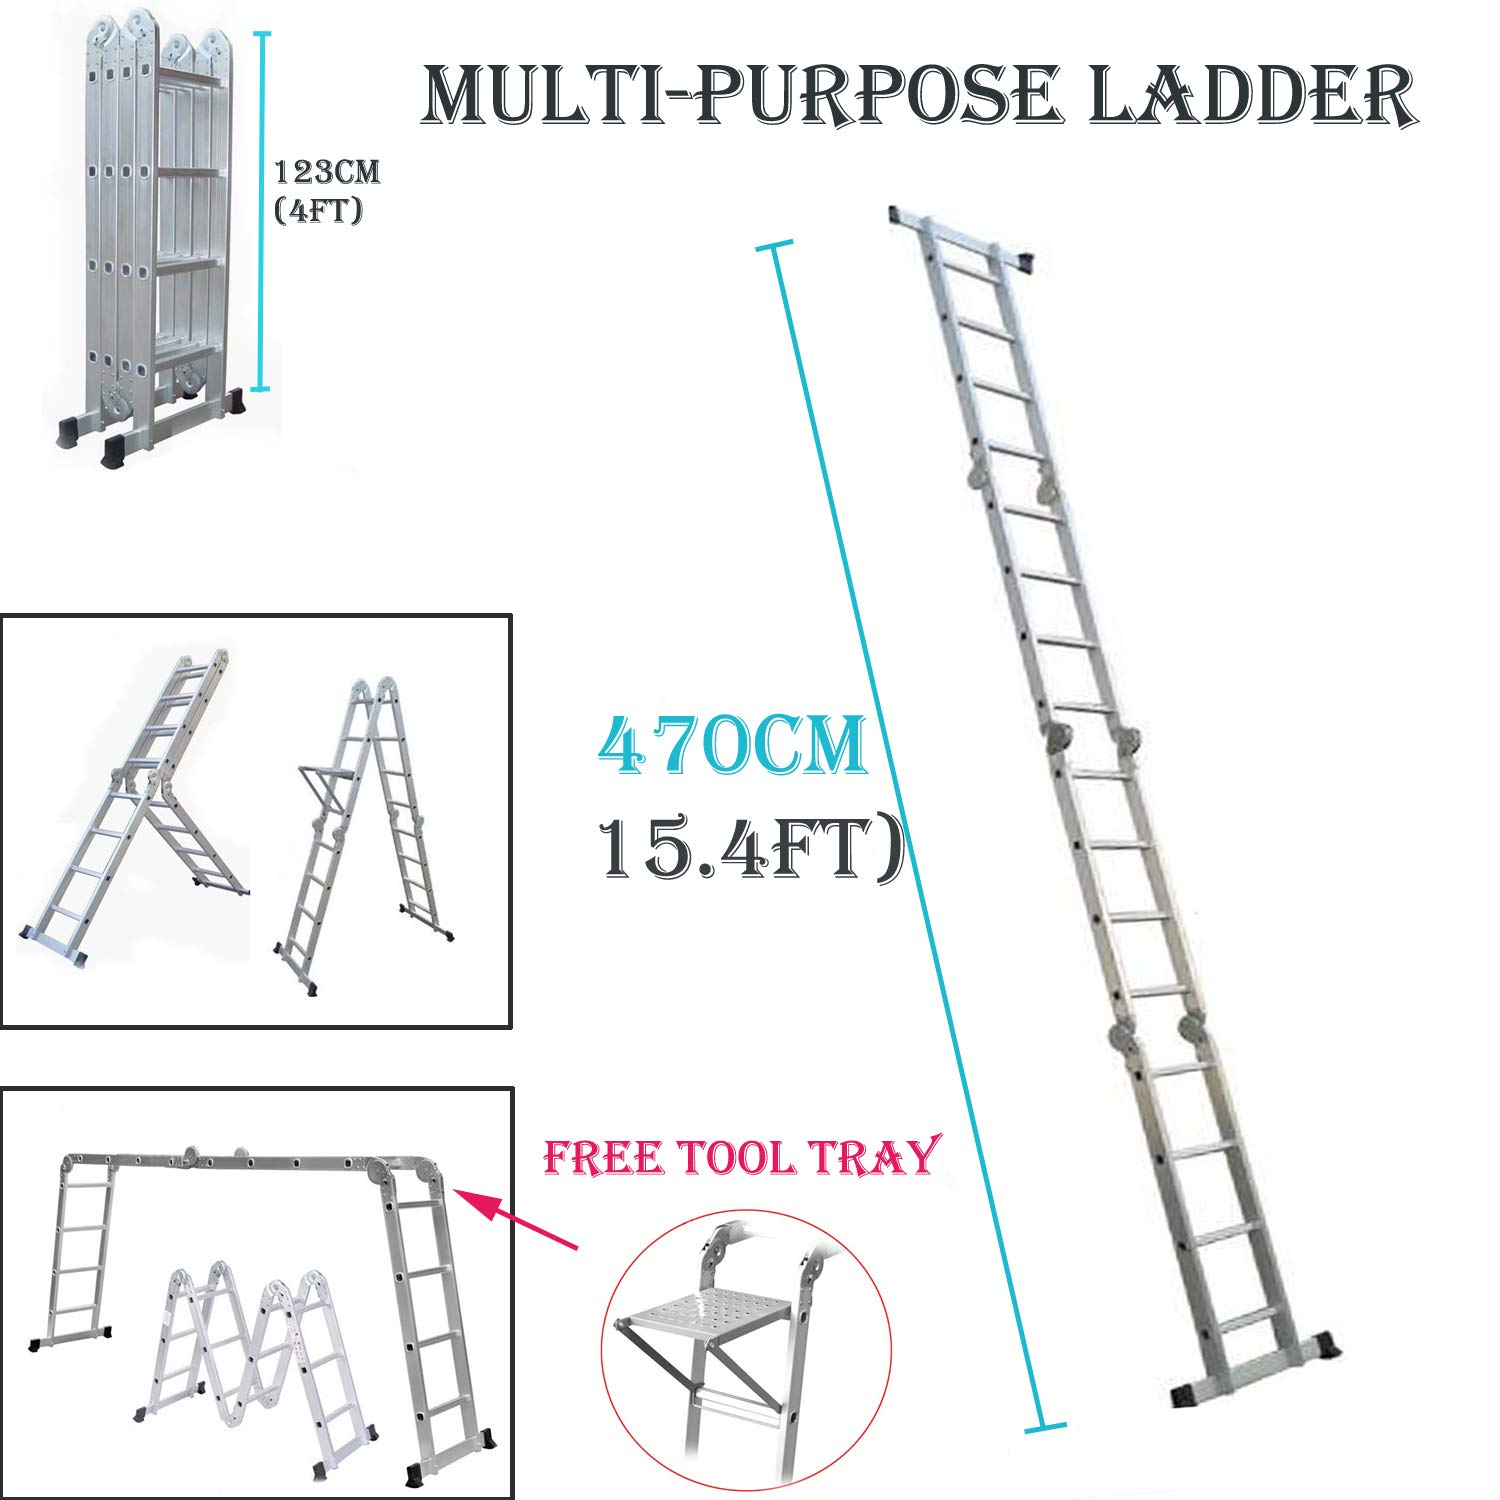 4.7m Aluminium Multi-Function Ladder 15.5ft Multi-Purpose Folding Ladder Extendable Step Ladder with 1 Tool Tray, 4x4 Steps, UK Stock AutoBaBa